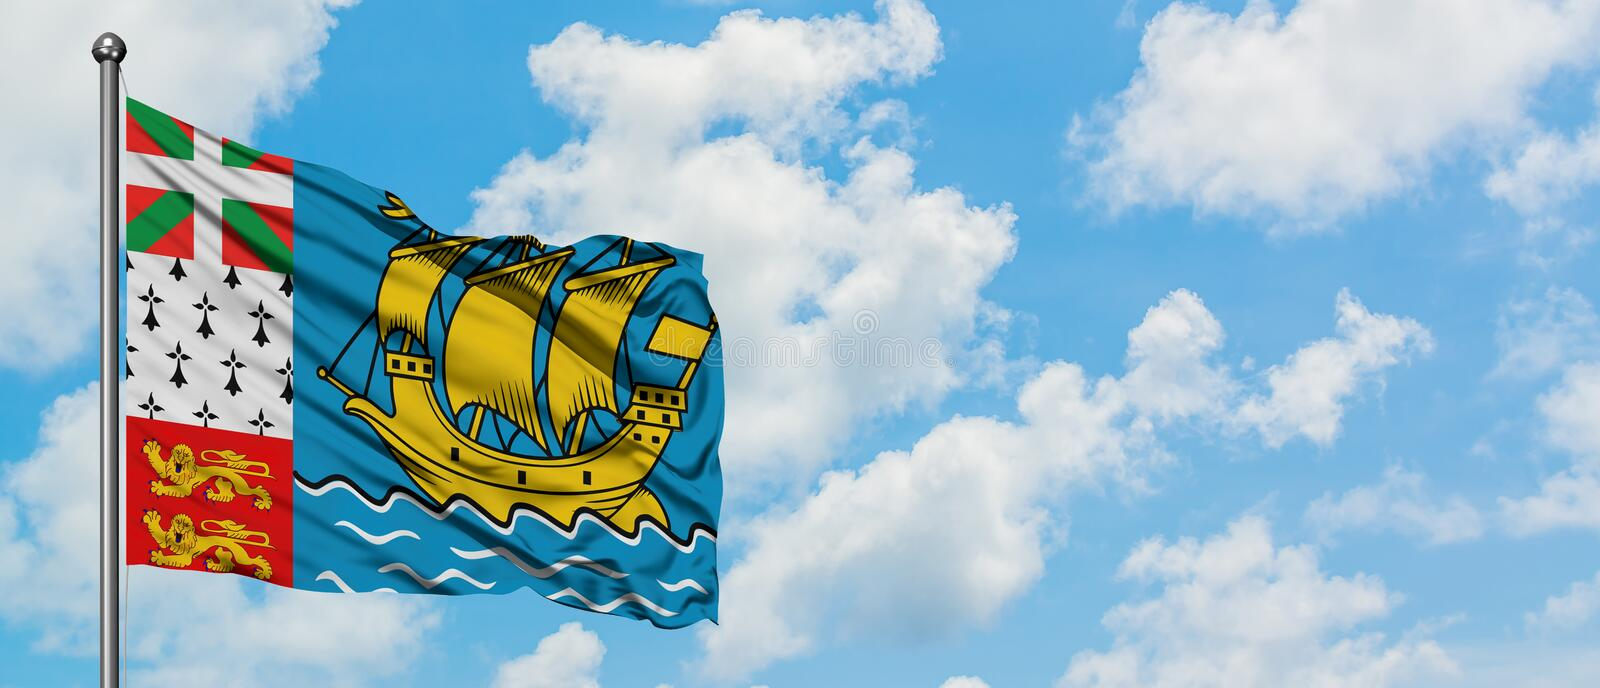 Saint Pierre And Miquelon flag waving in the wind against white cloudy blue sky. Diplomacy concept, international relations.  stock photos